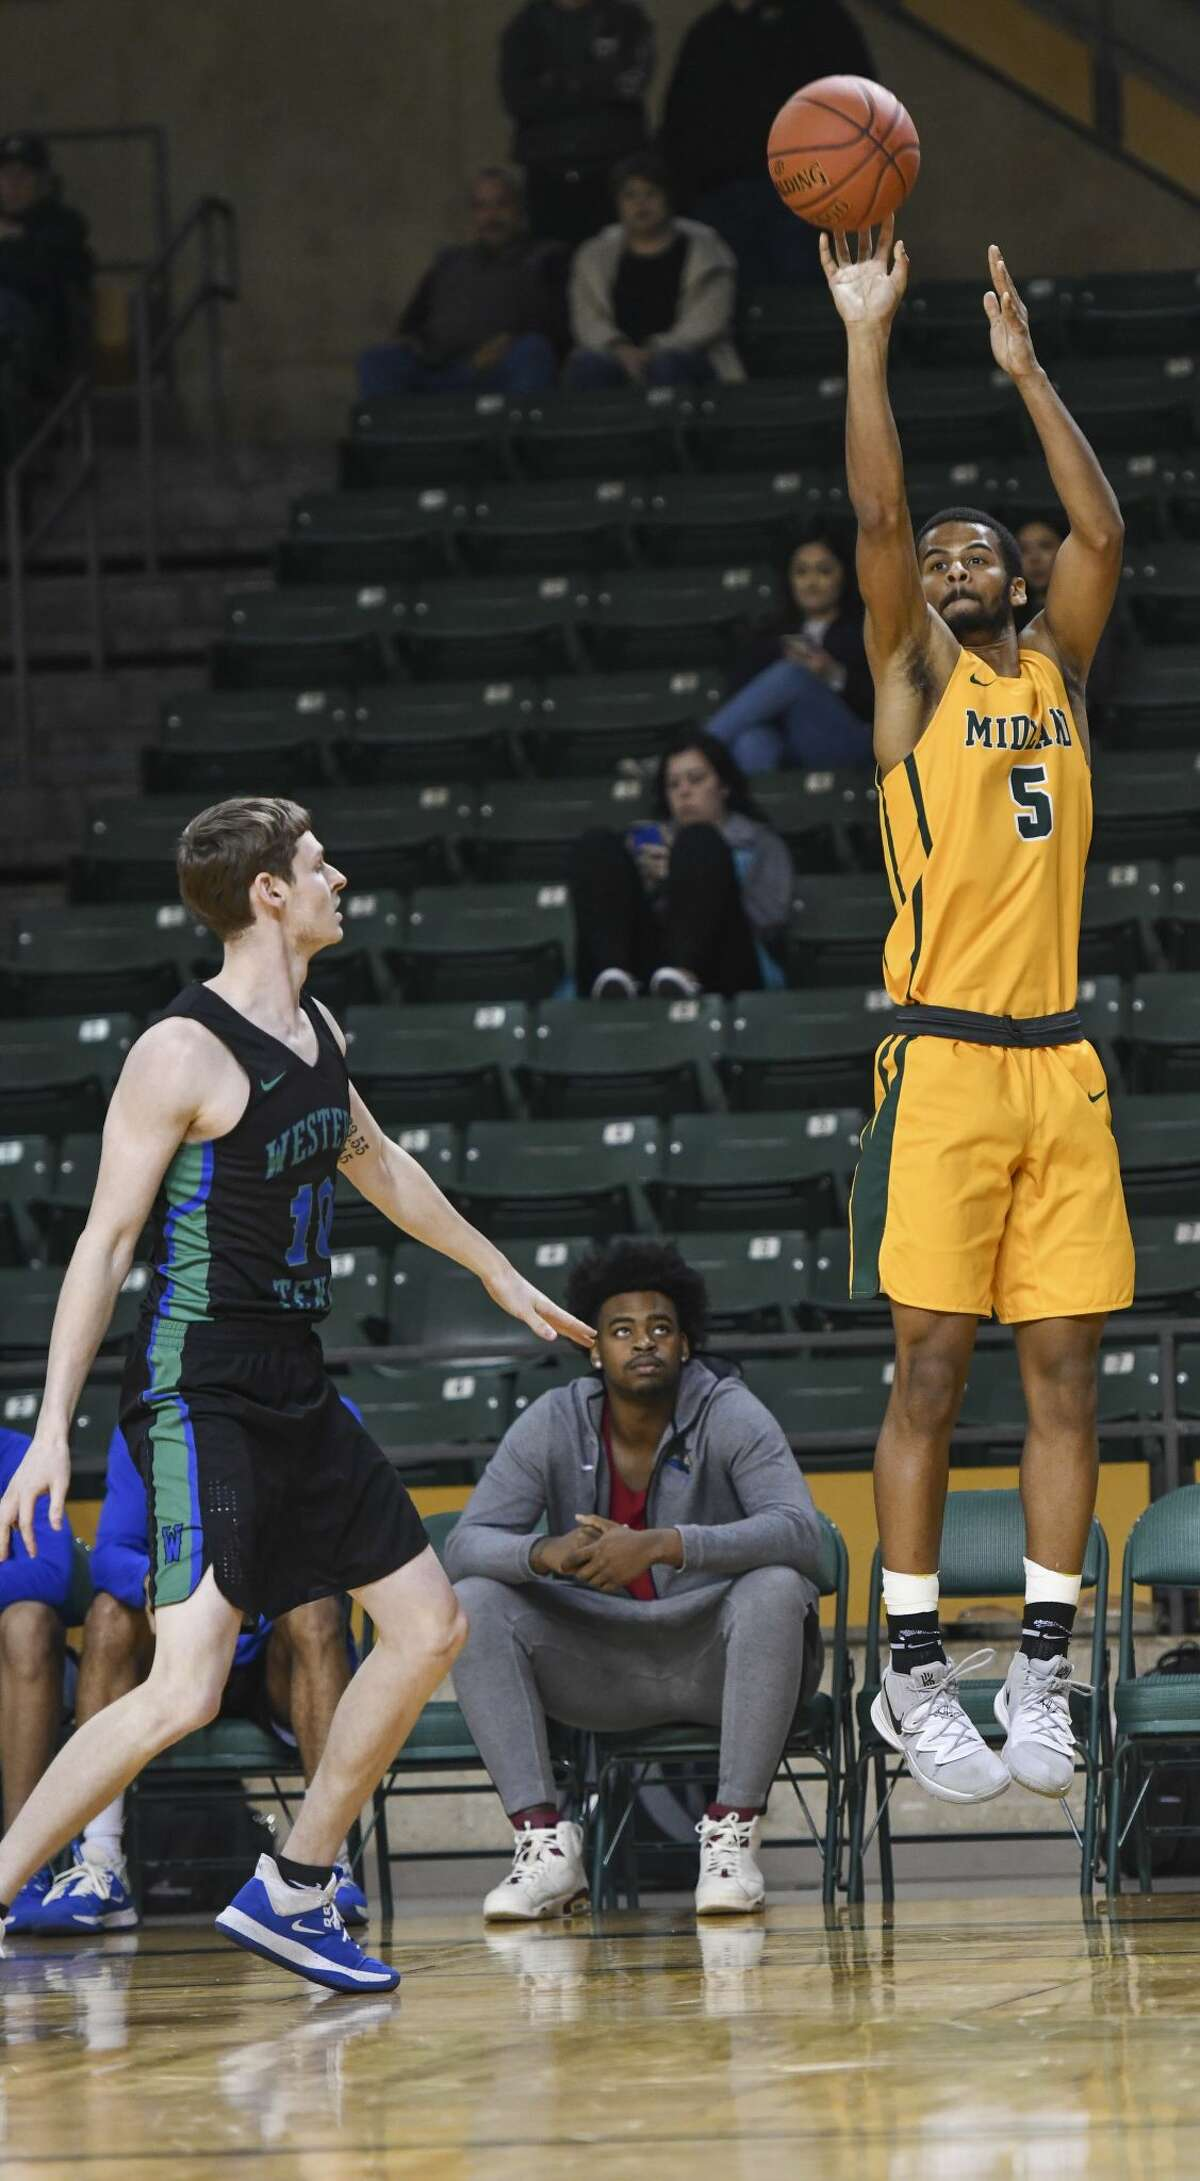 Midland College's Steven Richardson (5) shoots the ball as Western Texas College's Carson Hammond watches Thursday, Feb. 6, 2020 at Chaparral Center.